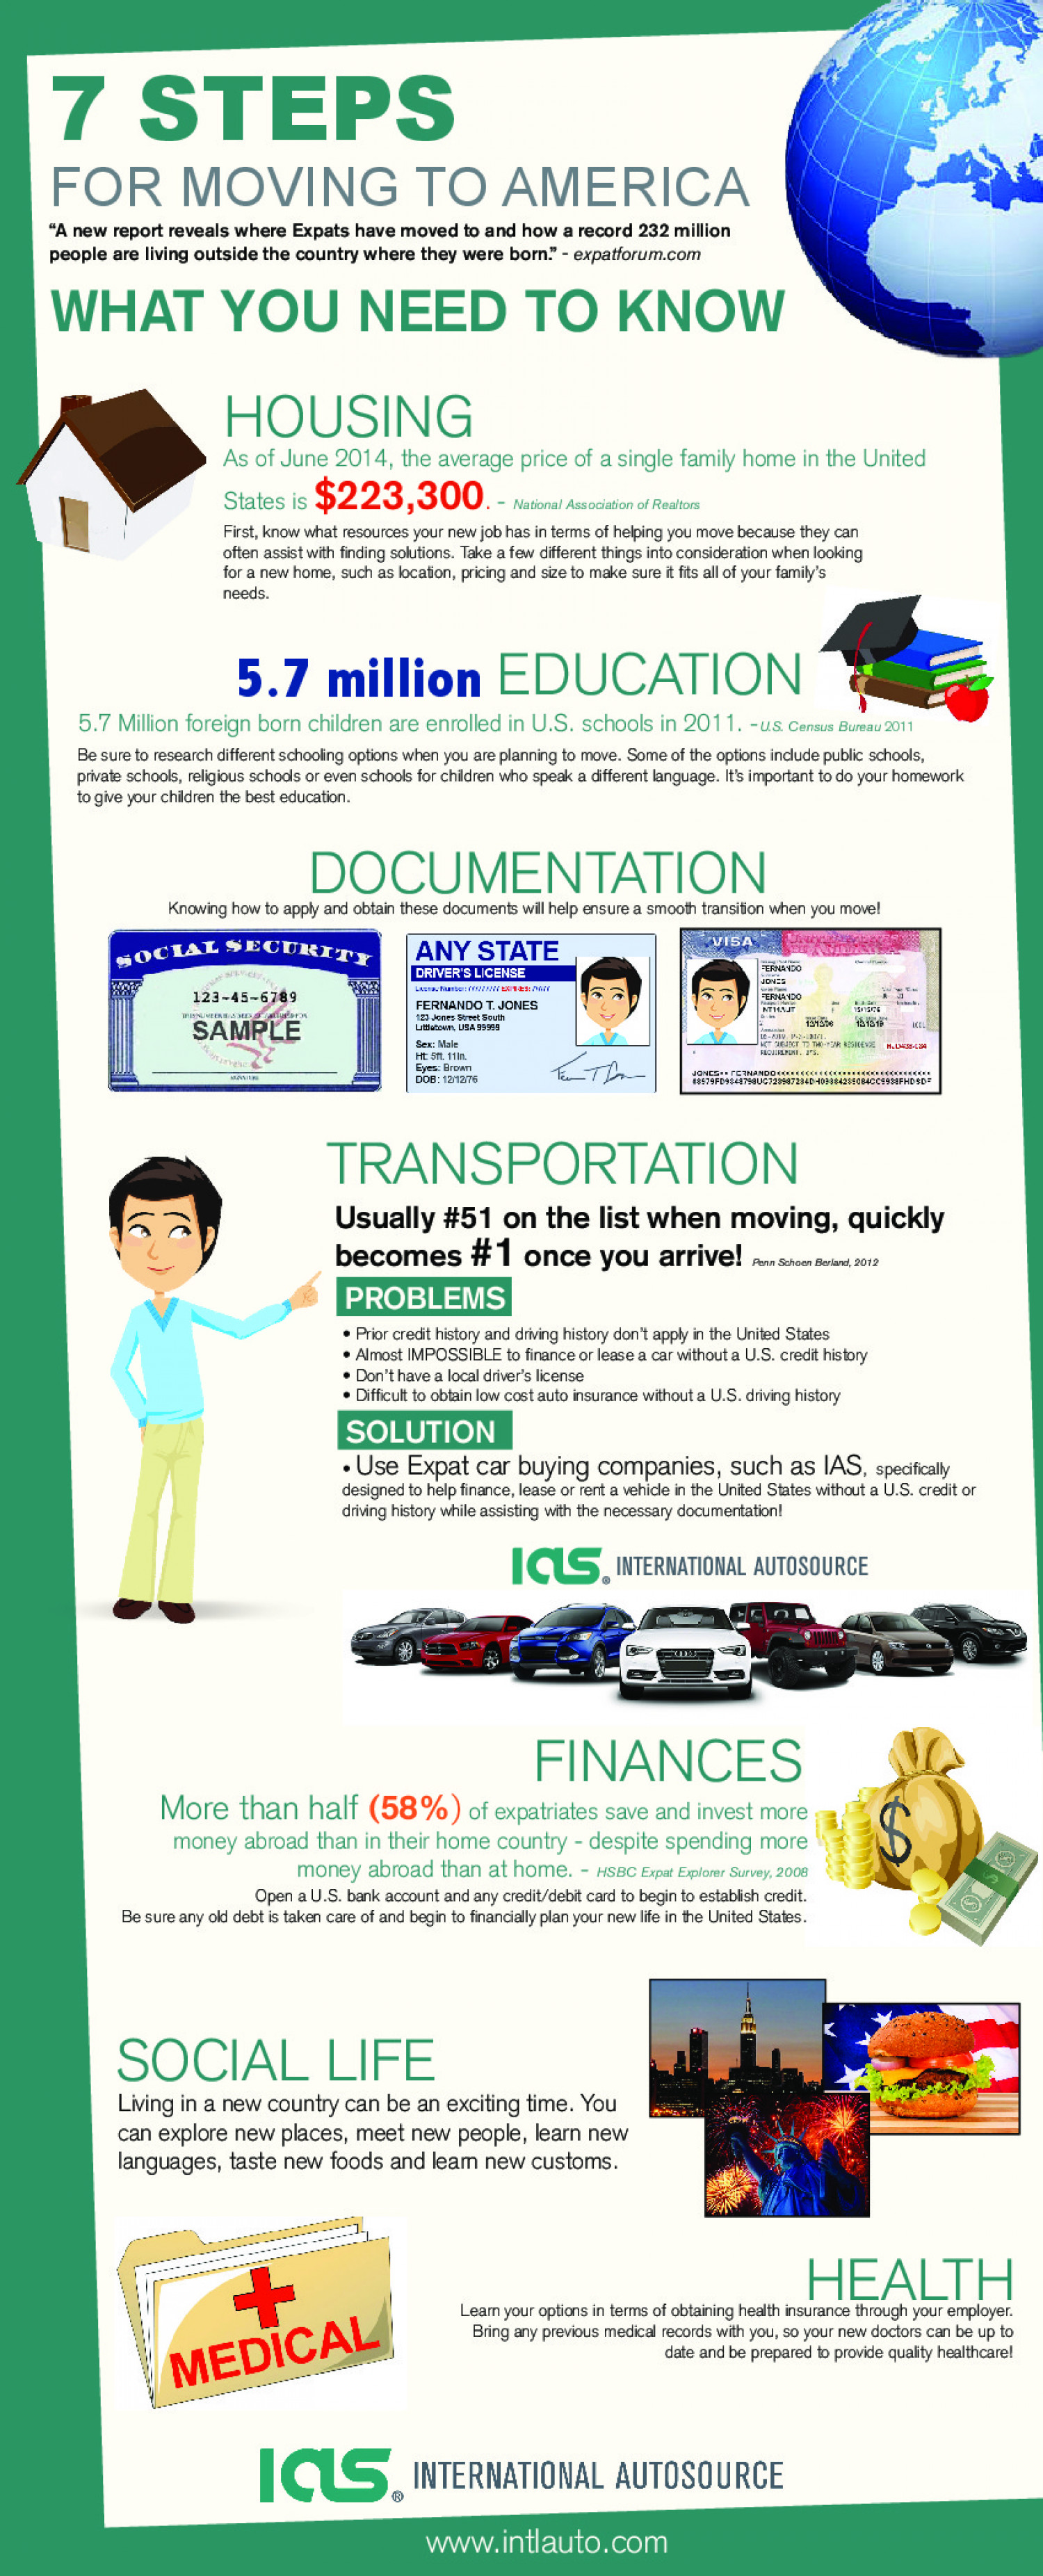 7 Steps for Moving to America Infographic